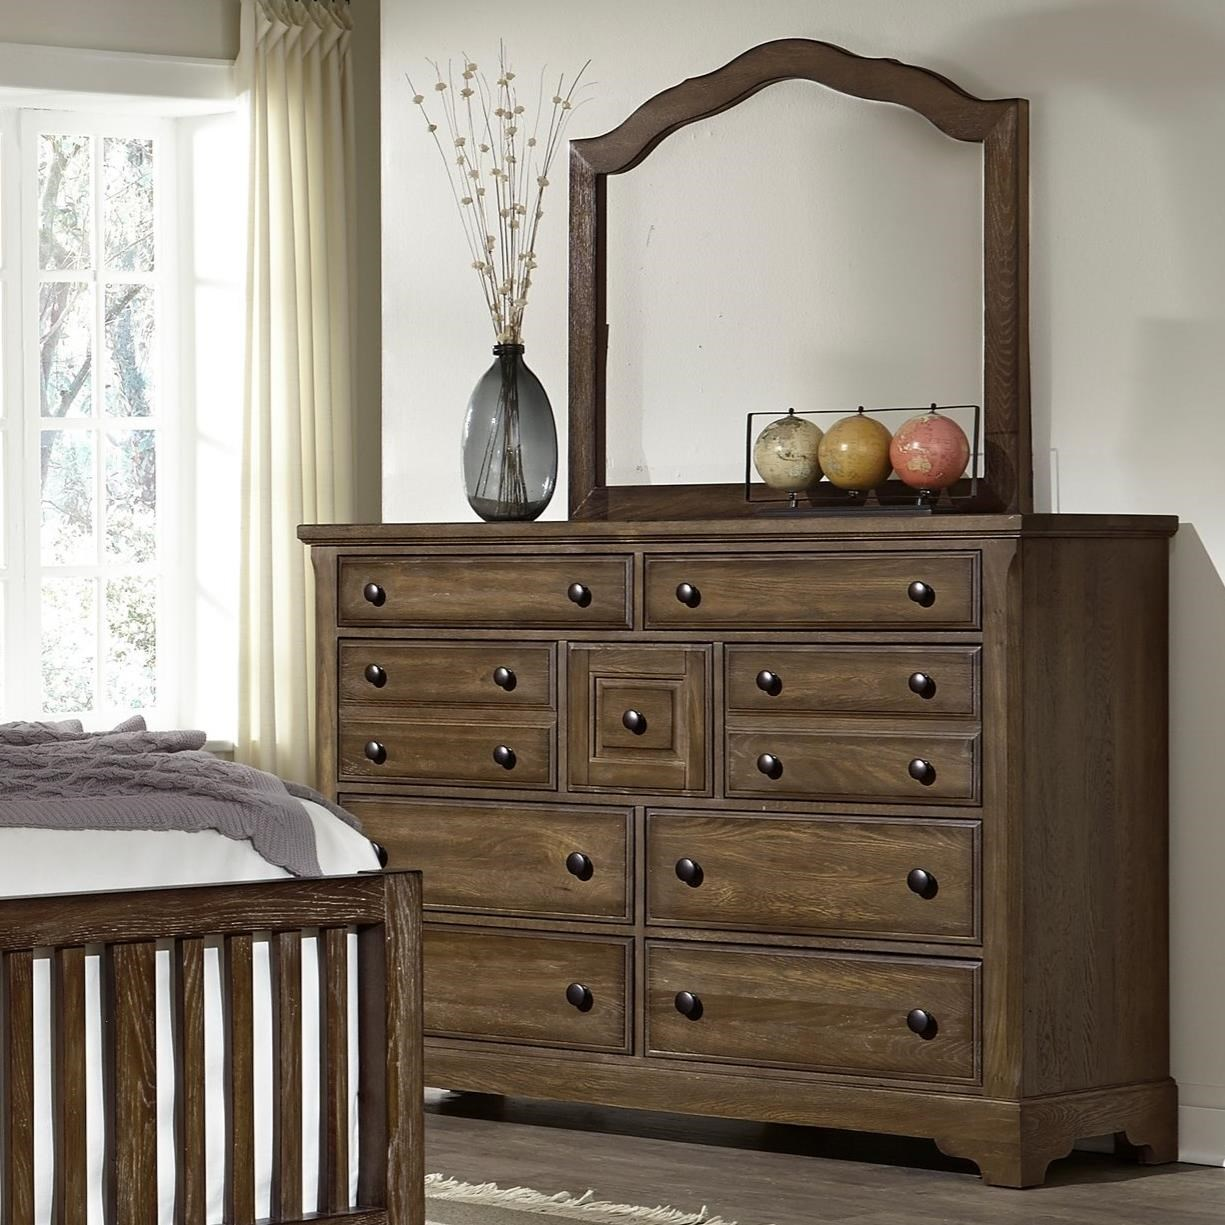 Artisan Choices Villa Triple Dresser & Arched Mirror by Artisan & Post at Rooms and Rest